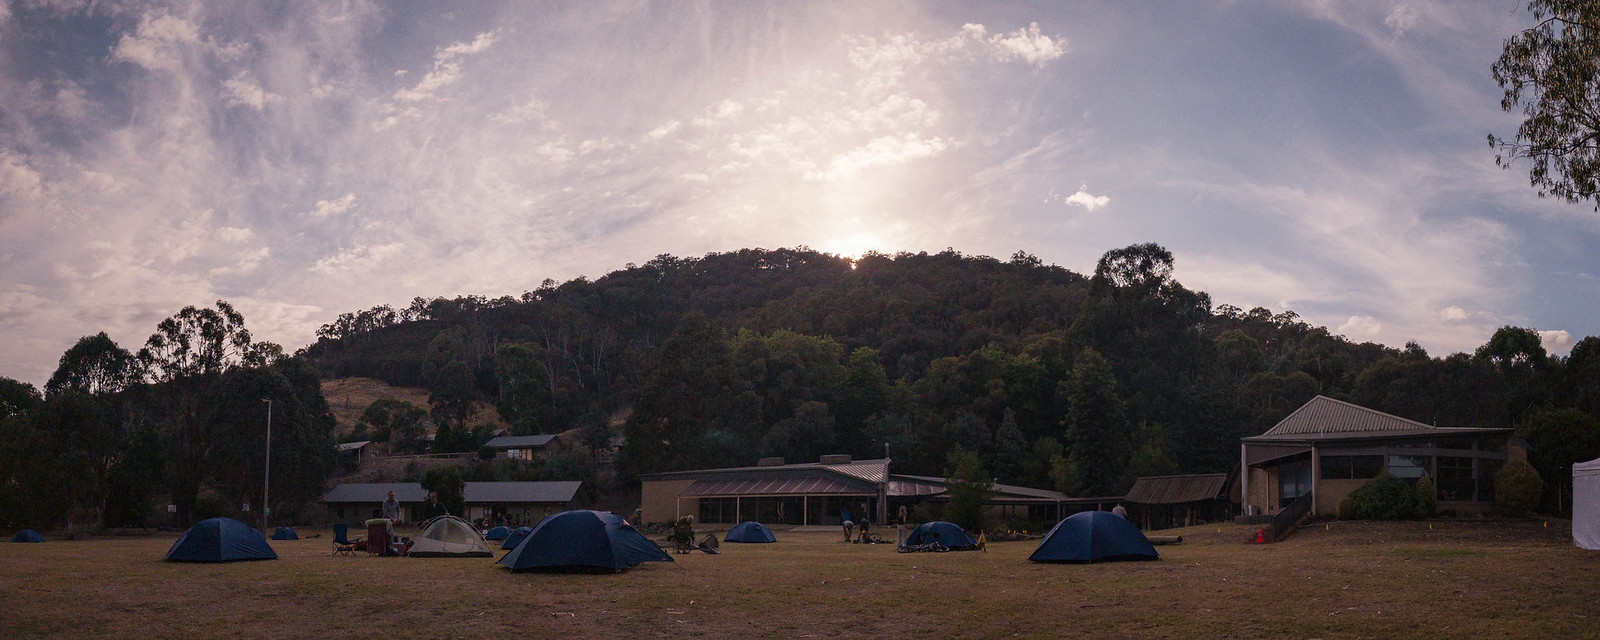 Sun rising over the mountain with blue tents in the foreground